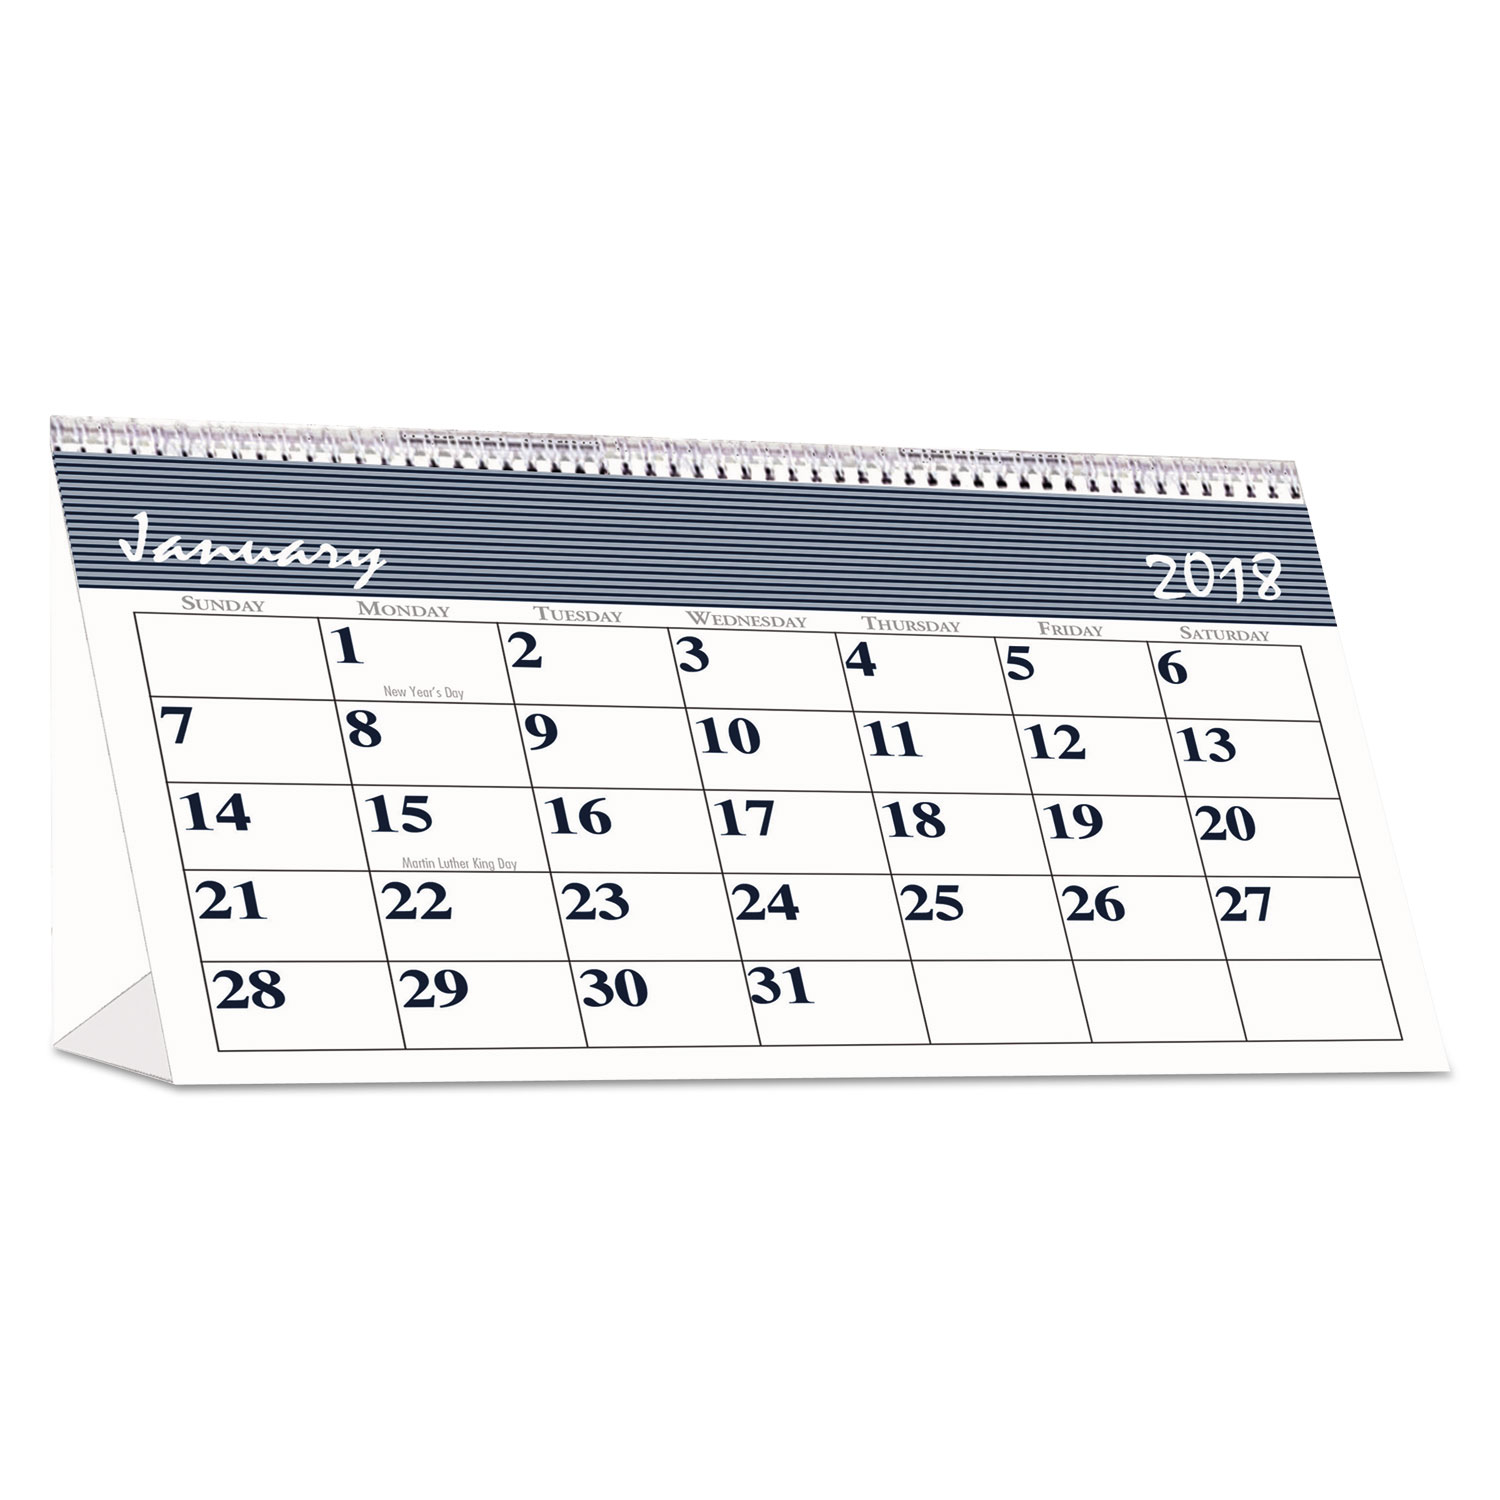 recycled bar harbor desk tent monthly calendar by house of doolittle hod3679 ontimesupplies com